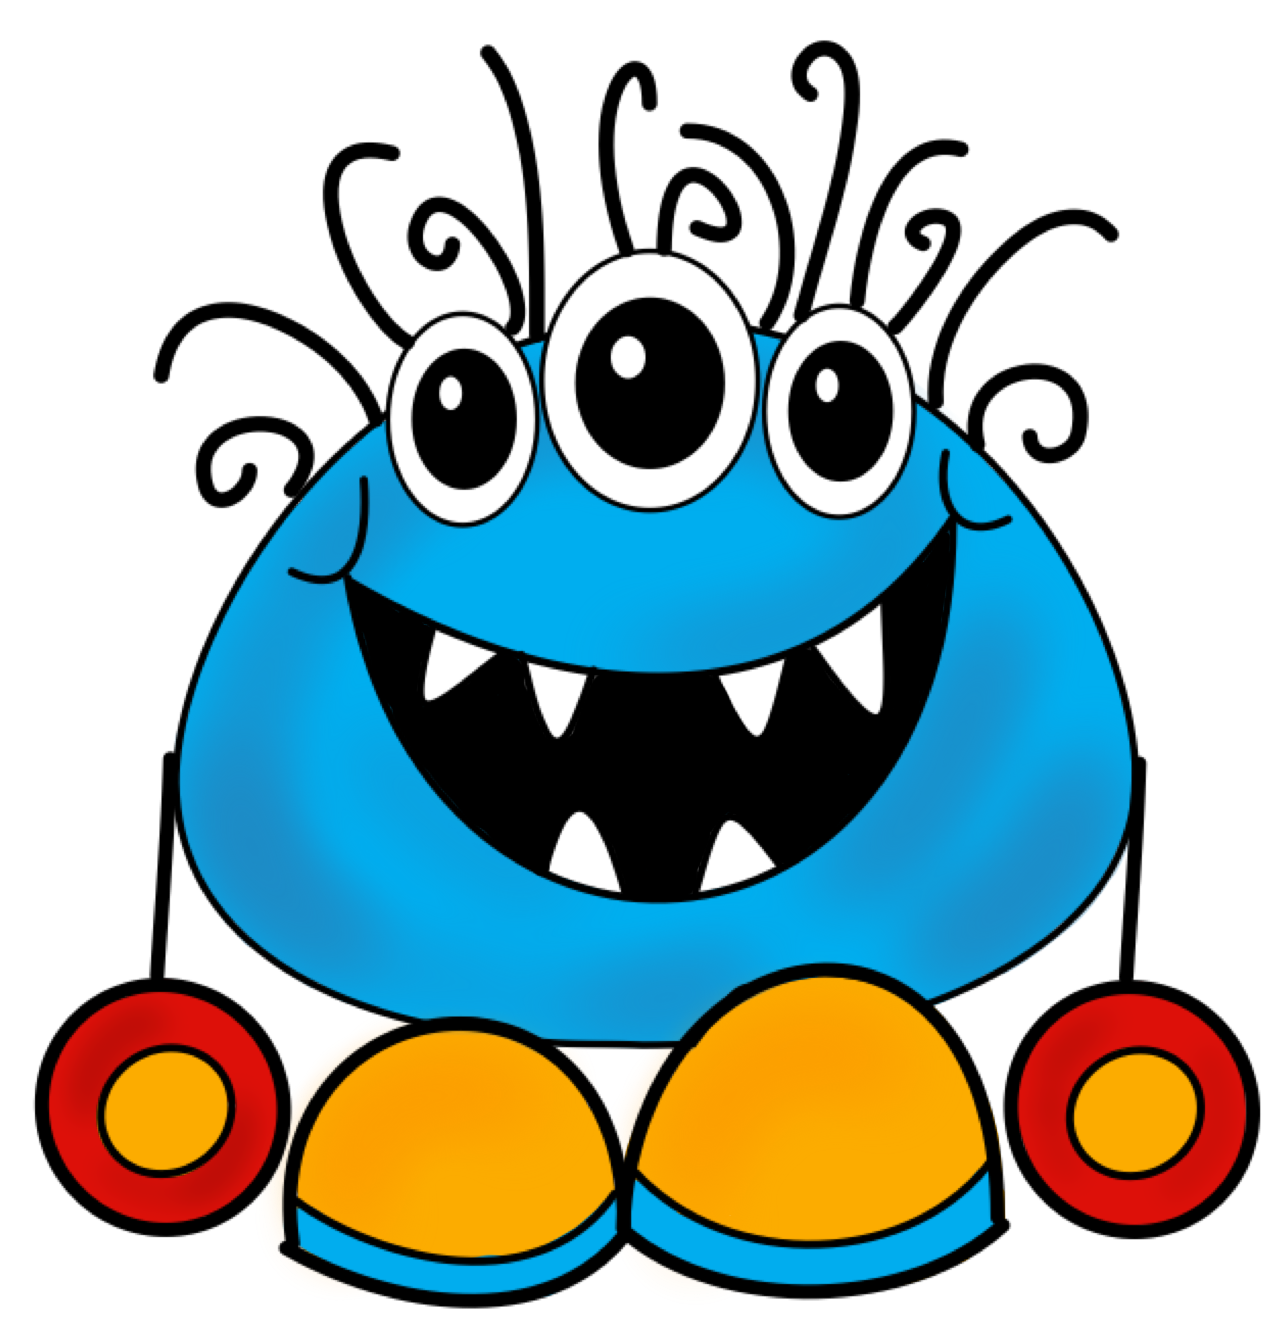 Monster clip art cartoon free clipart im-Monster clip art cartoon free clipart images 2-2